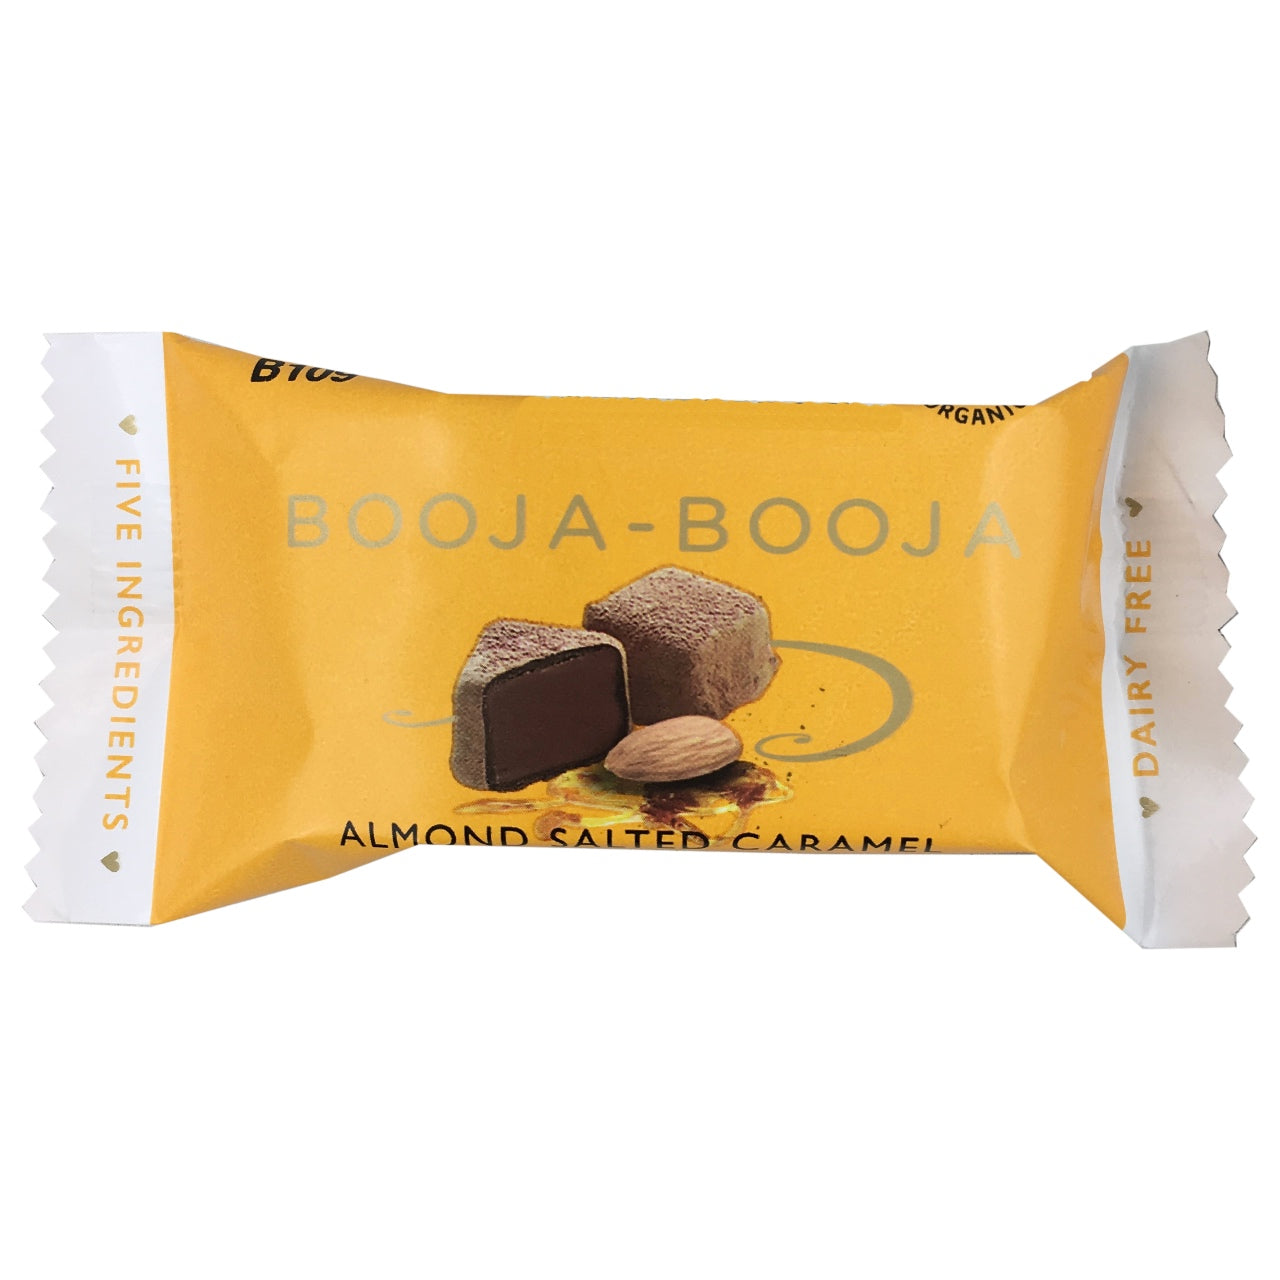 Booja-Booja Organic Almond and Sea Salt Caramel Truffle (Best Before May 30th 2018)